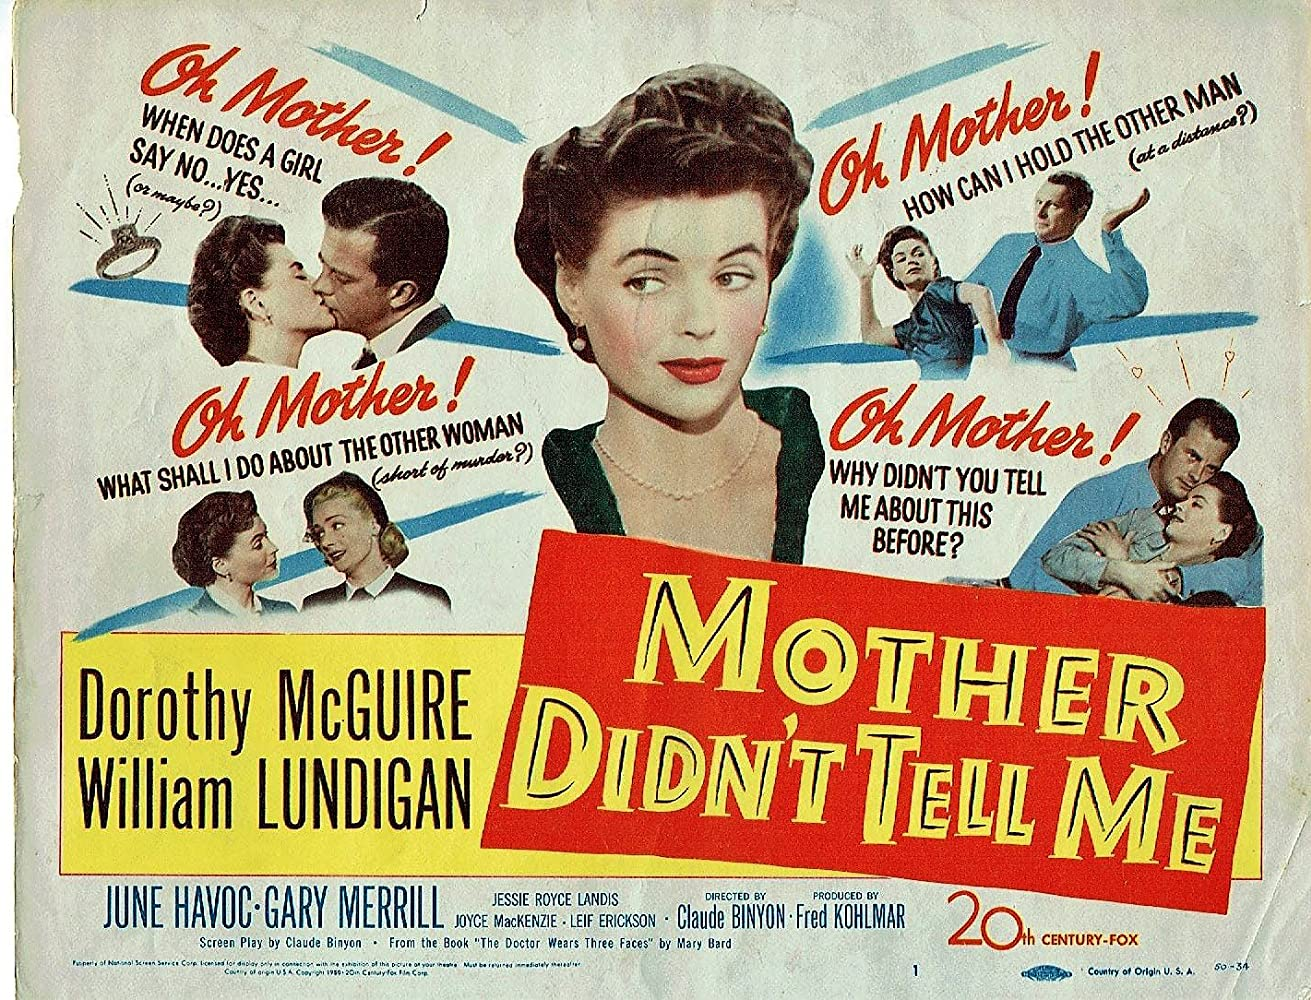 William Lundigan and Dorothy McGuire in Mother Didn't Tell Me (1950)